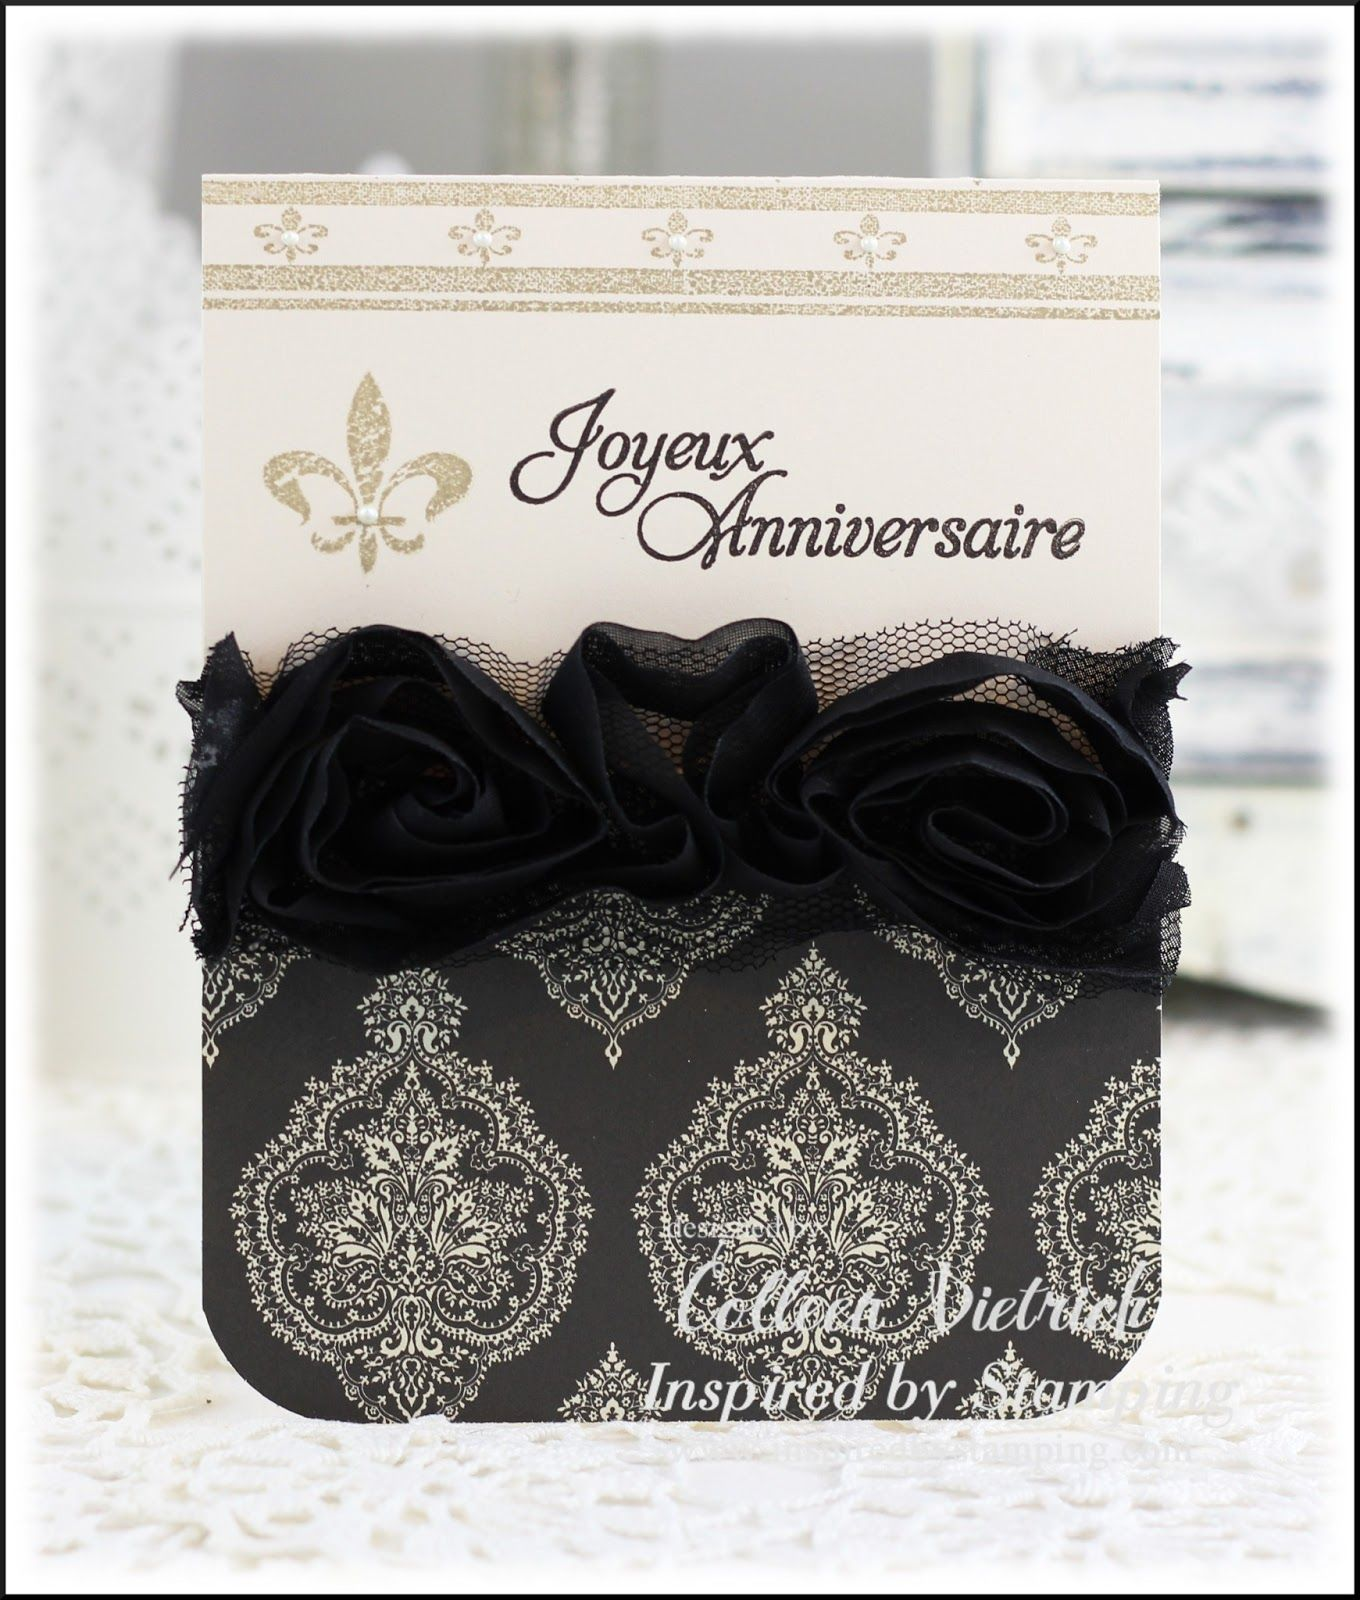 Inspired by Stamping, French Country stamp set, Big Notes in French stamp set, anniversary card